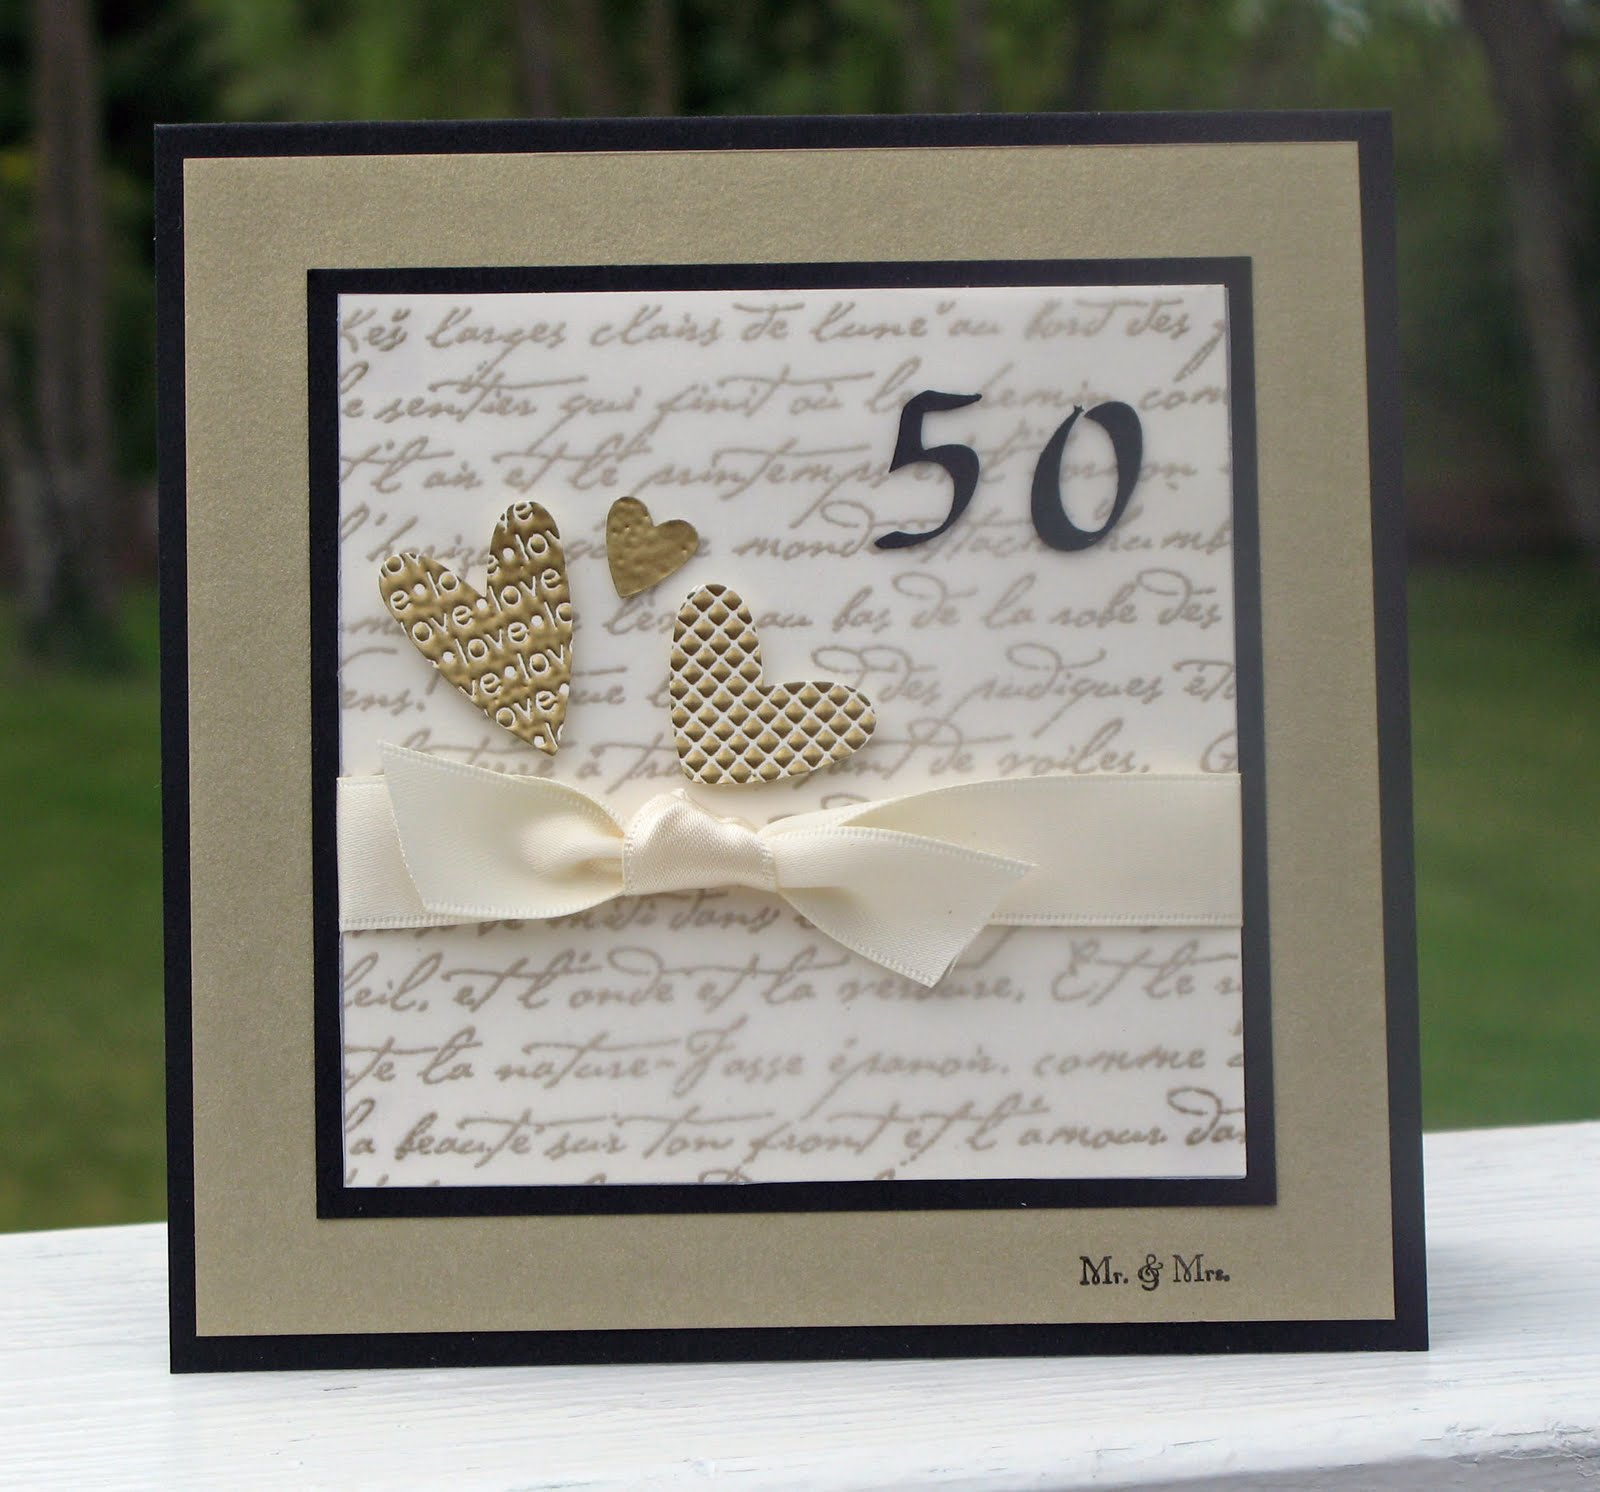 Unique 50th Anniversary Decoration Ideas: 50th Wedding Anniversary Ideas On Pinterest